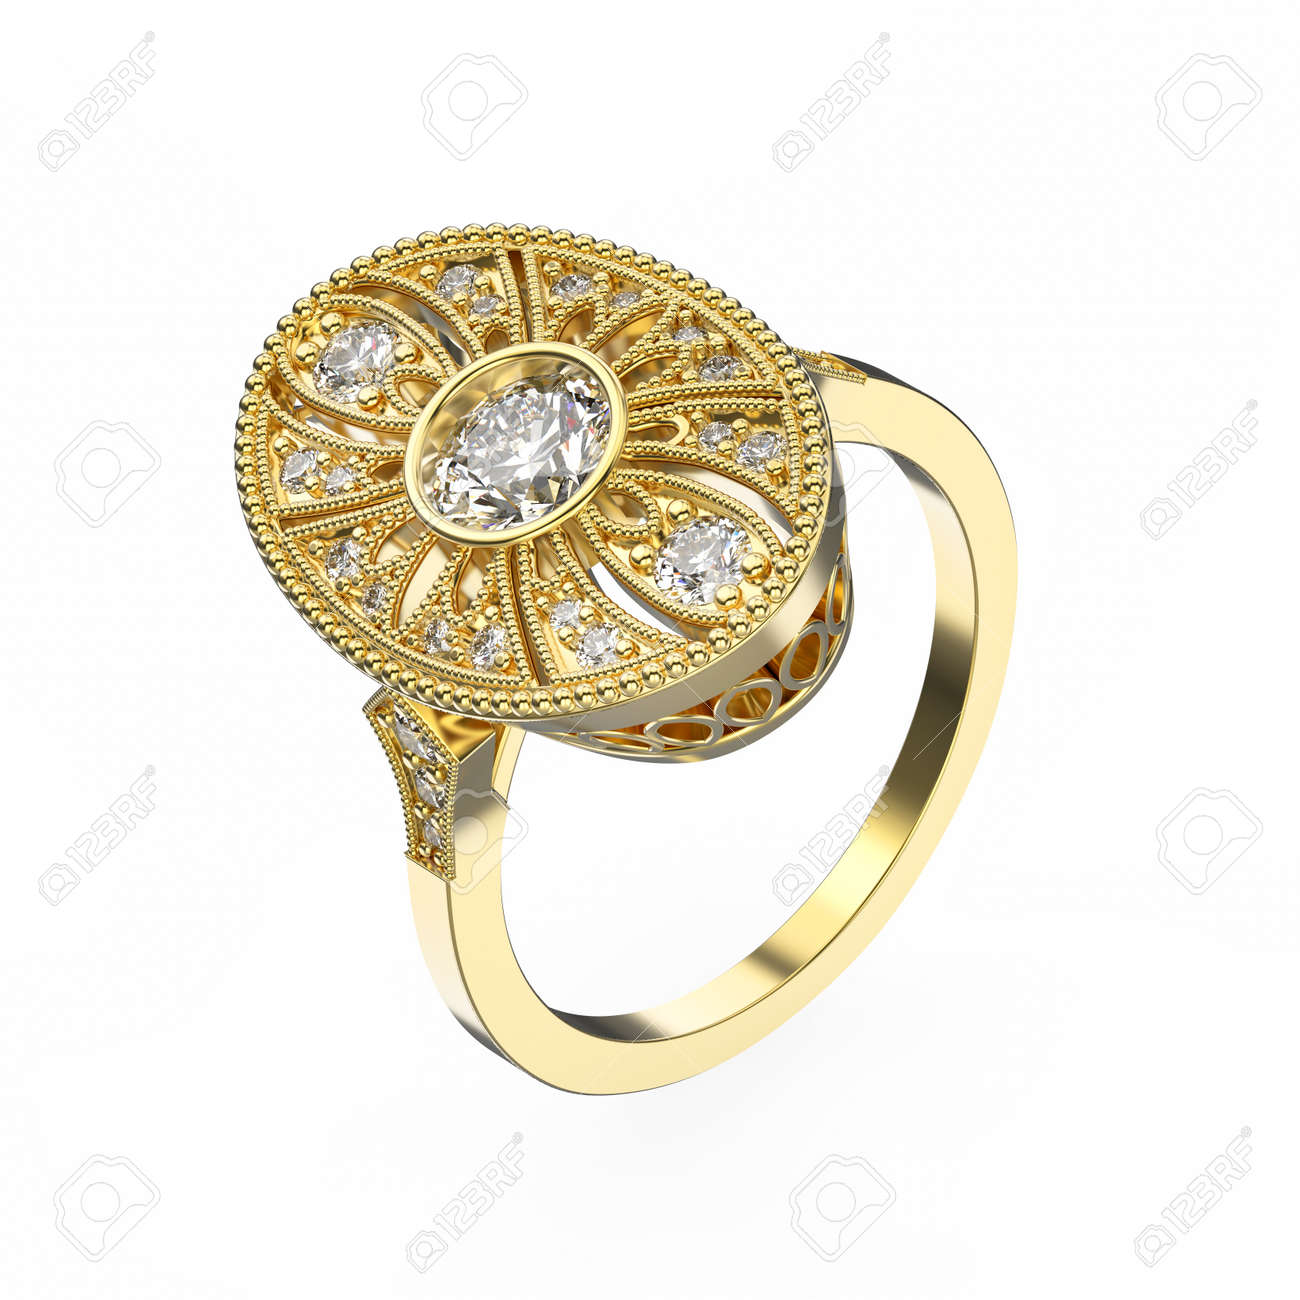 3D Illustration Rose Gold Ethnic Ring With Diamonds And Ornament